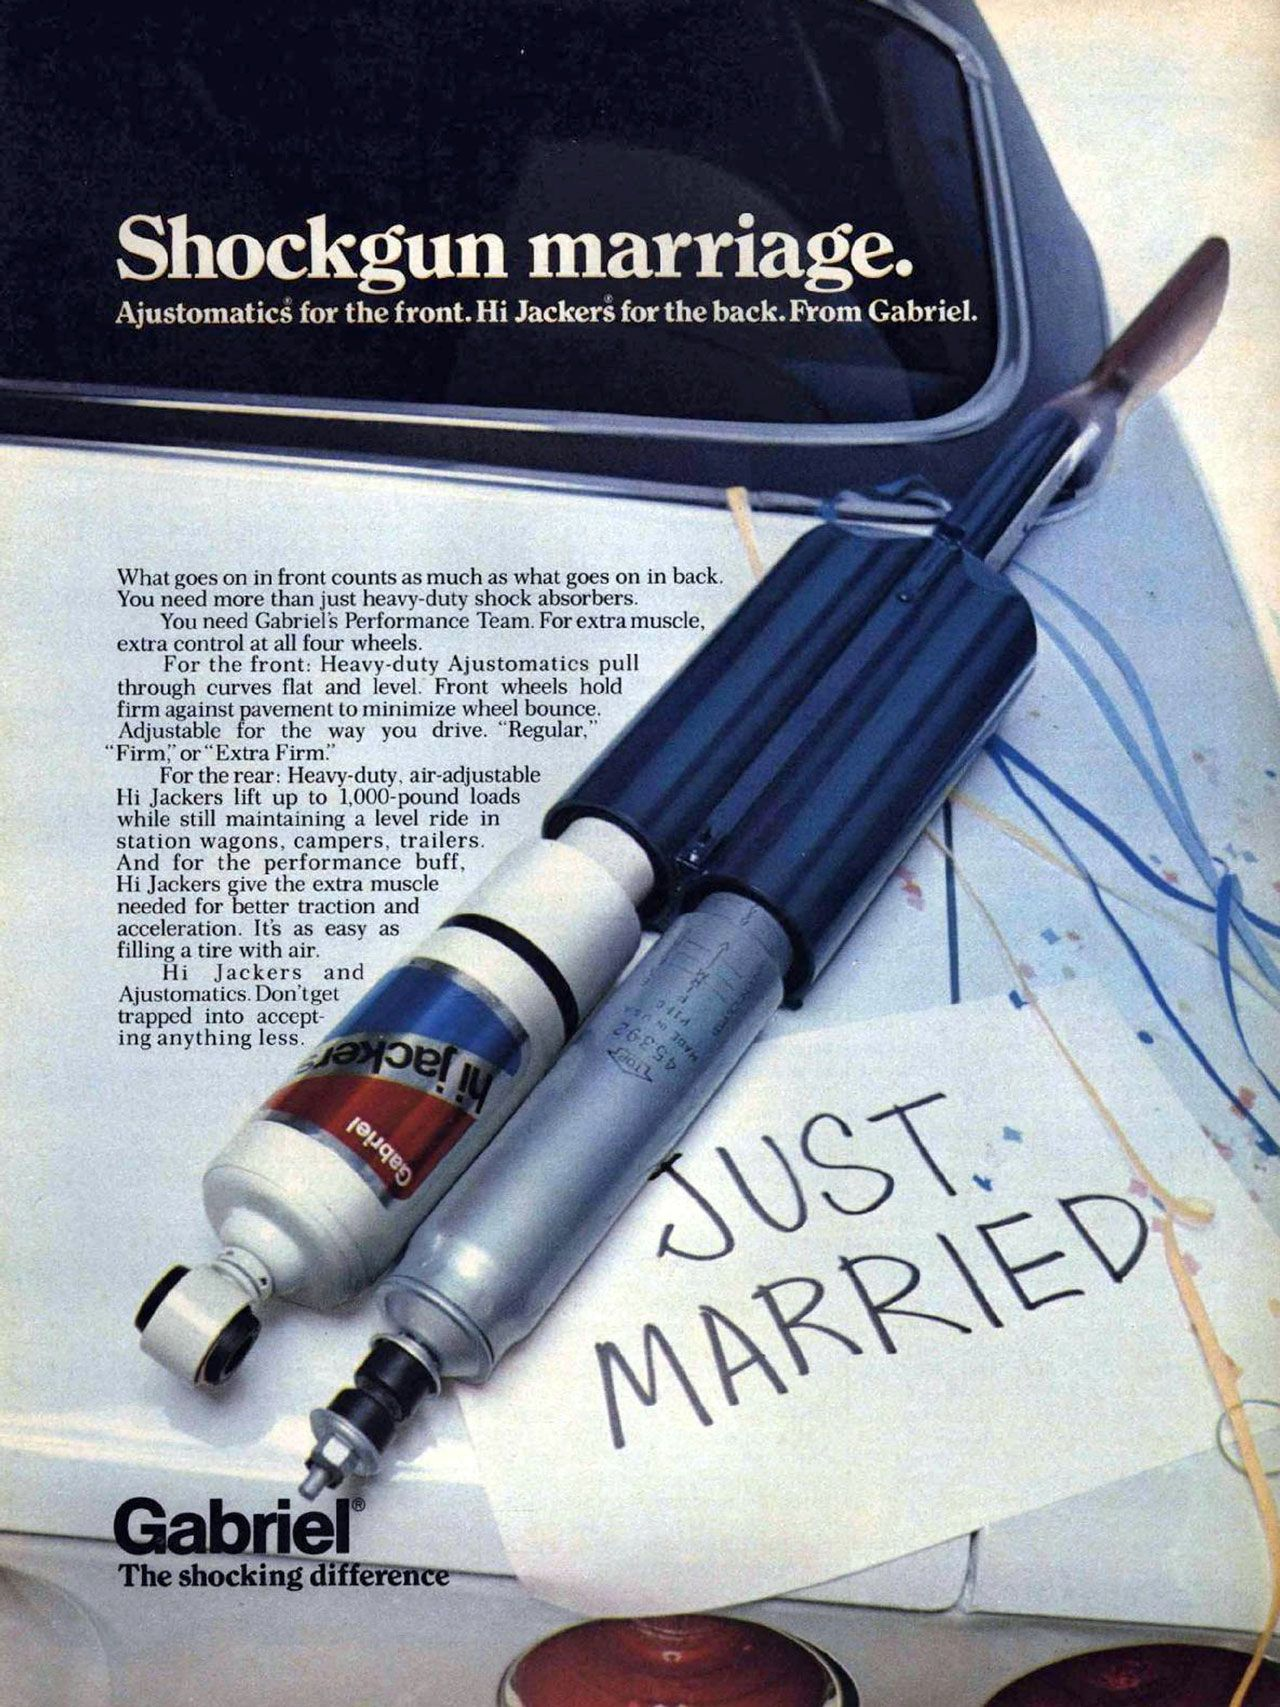 Shockgun marriage. Ajustomatics for the front. Hi Jackers for the back. From Gabriel. The shocking difference. What goes on in front counts as much as what goes on in back. You need more than just heavy-duty shock absorbers. You need Gabriel's Performance Team. For extra muscle, extra control at all four wheels. For the front: Heavy-duty Ajustomatics pull through curves flat and level. Front wheels hold firm against pavement to minimize wheel bounce. Adjustable for the way you drive. 'Regular,' 'Firm:' or 'Extra Firm:' For the rear: Heavy-duty, air-adjustable Hi Jackers lift up to 1,000-pound loads while still maintaining a level ride in station wagons, campers, trailers. And for the performance buff, Hi Jackers give the extra muscle needed for better traction and acceleration. It's as easy as filling a tire with air. Hi Jackers and Ajustomatics.Don'tget trapped into accept-ing anything less.